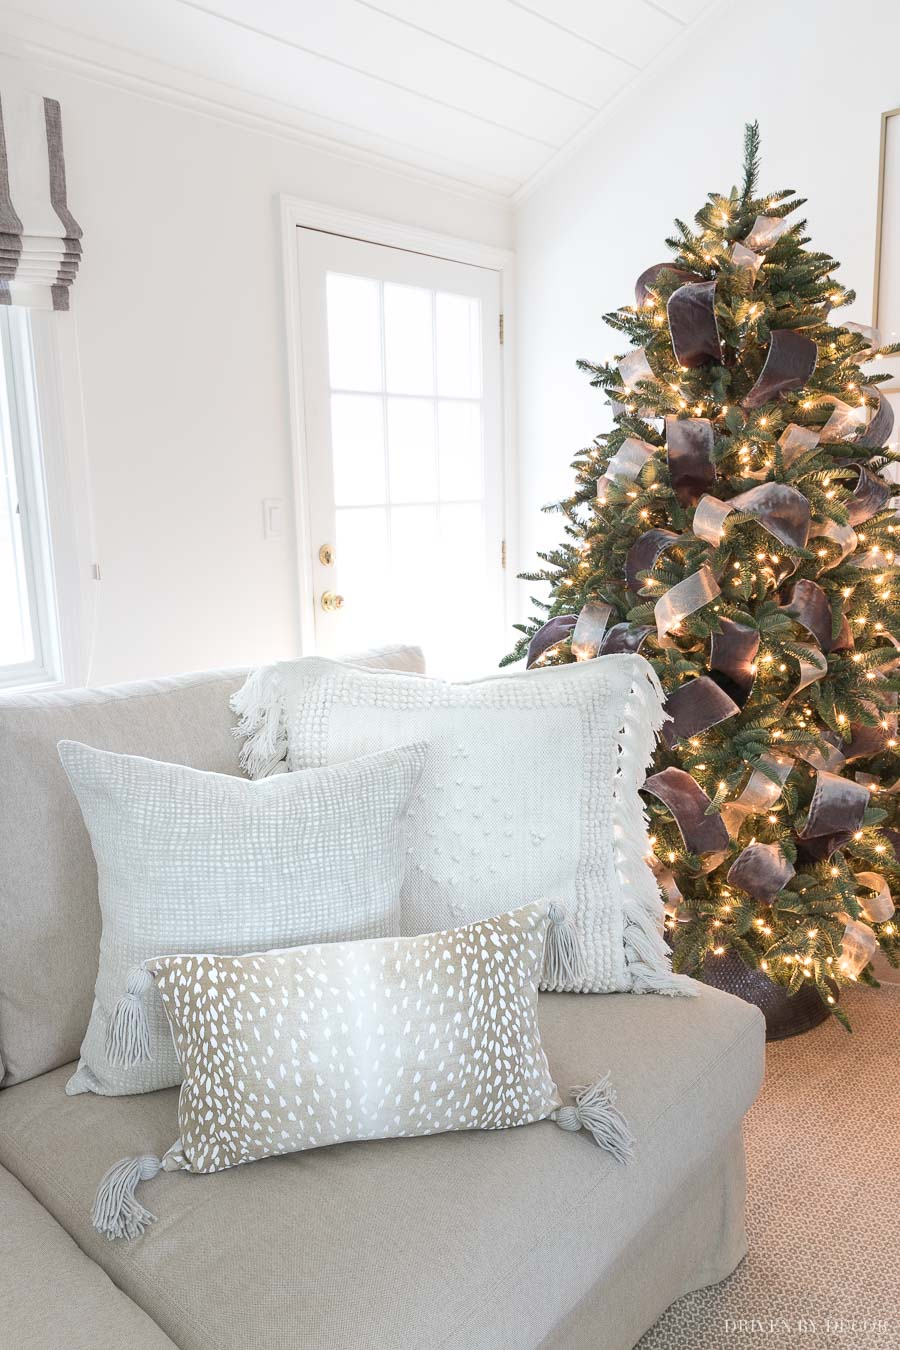 Loving this combination of textured neutral pillows for winter and the holidays!